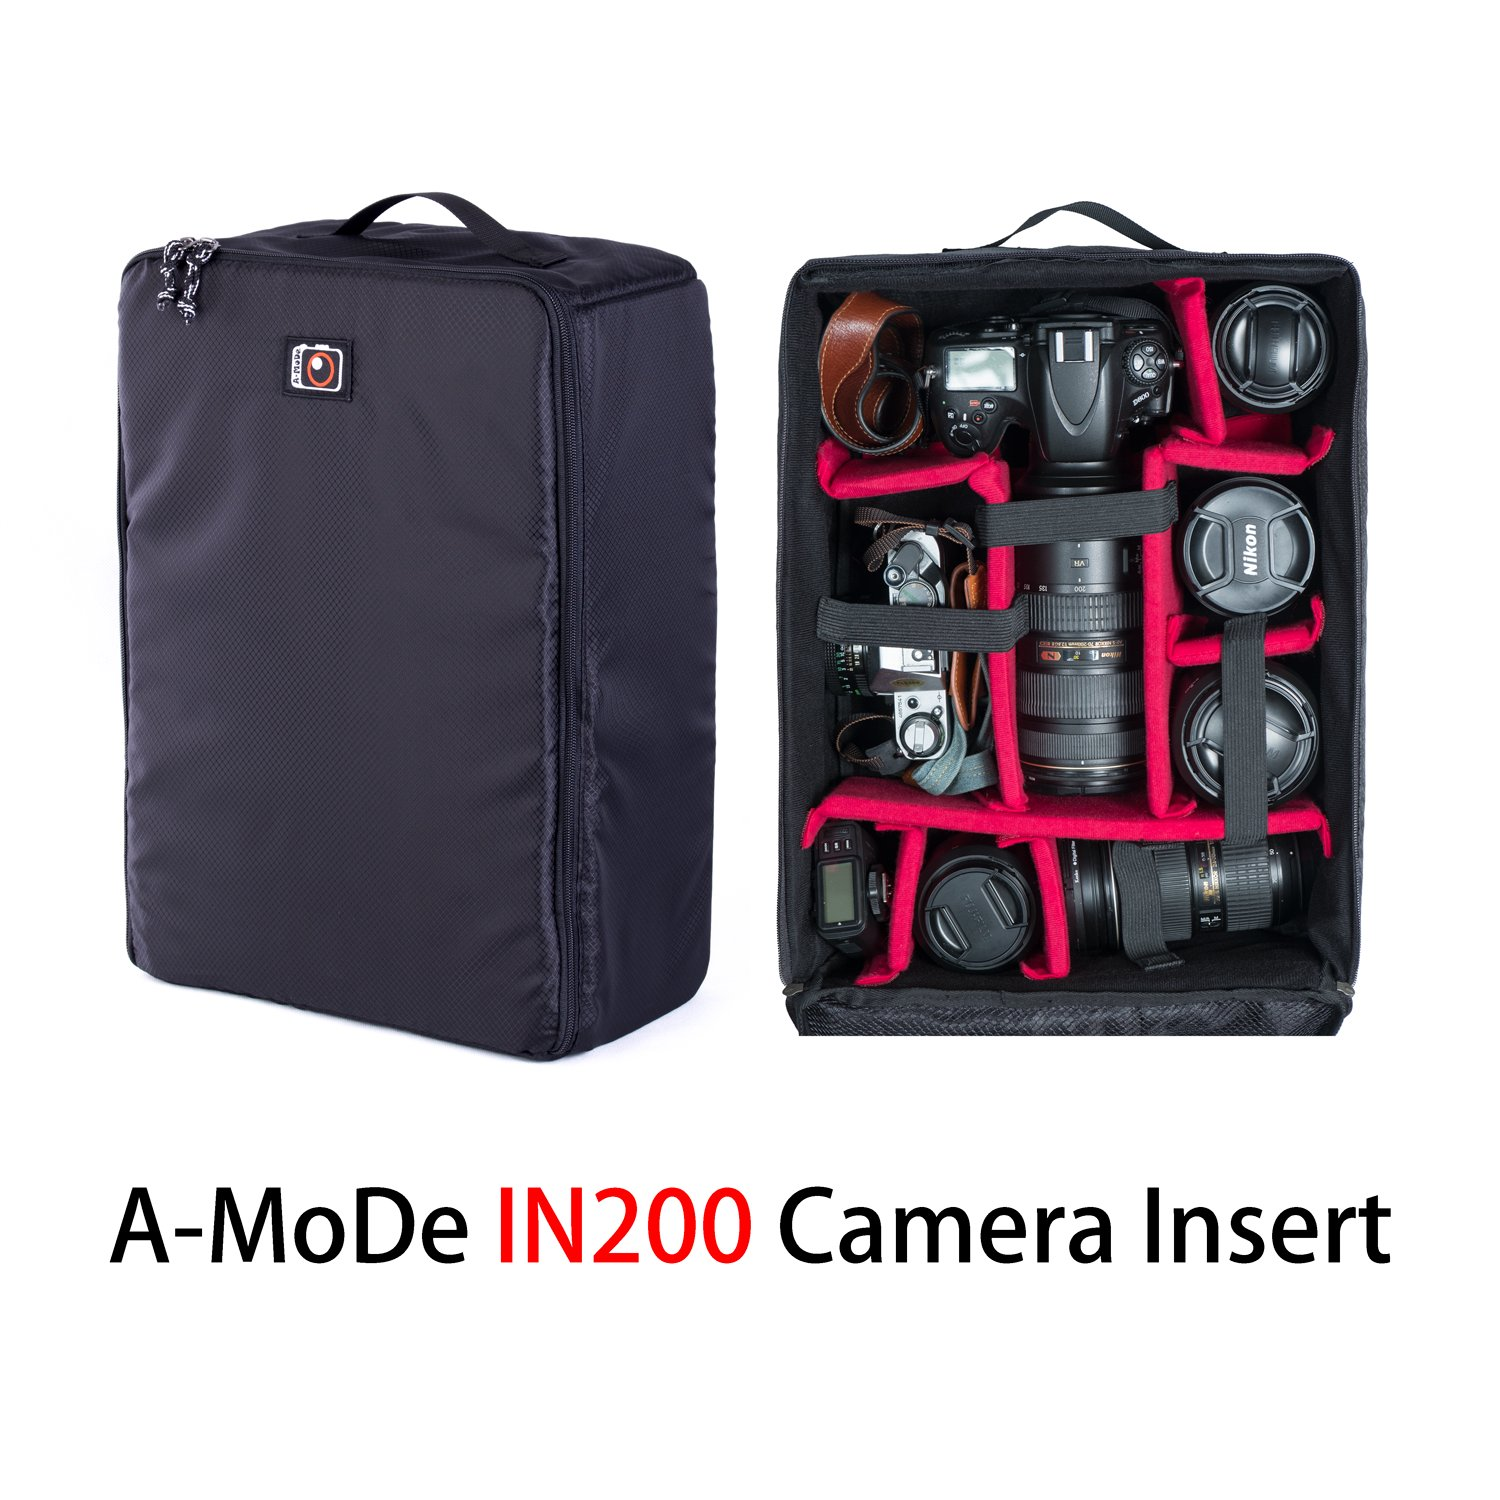 A-Mode DSLR Large Capacity Camera Luggage Insert Waterproof Shockproof Partition Padded Mirrorless Camera, Lens, Flash, Battery and Other Accessoriesbag case for 1D D5 Black A-MoDe Ltd. IN0200-BL